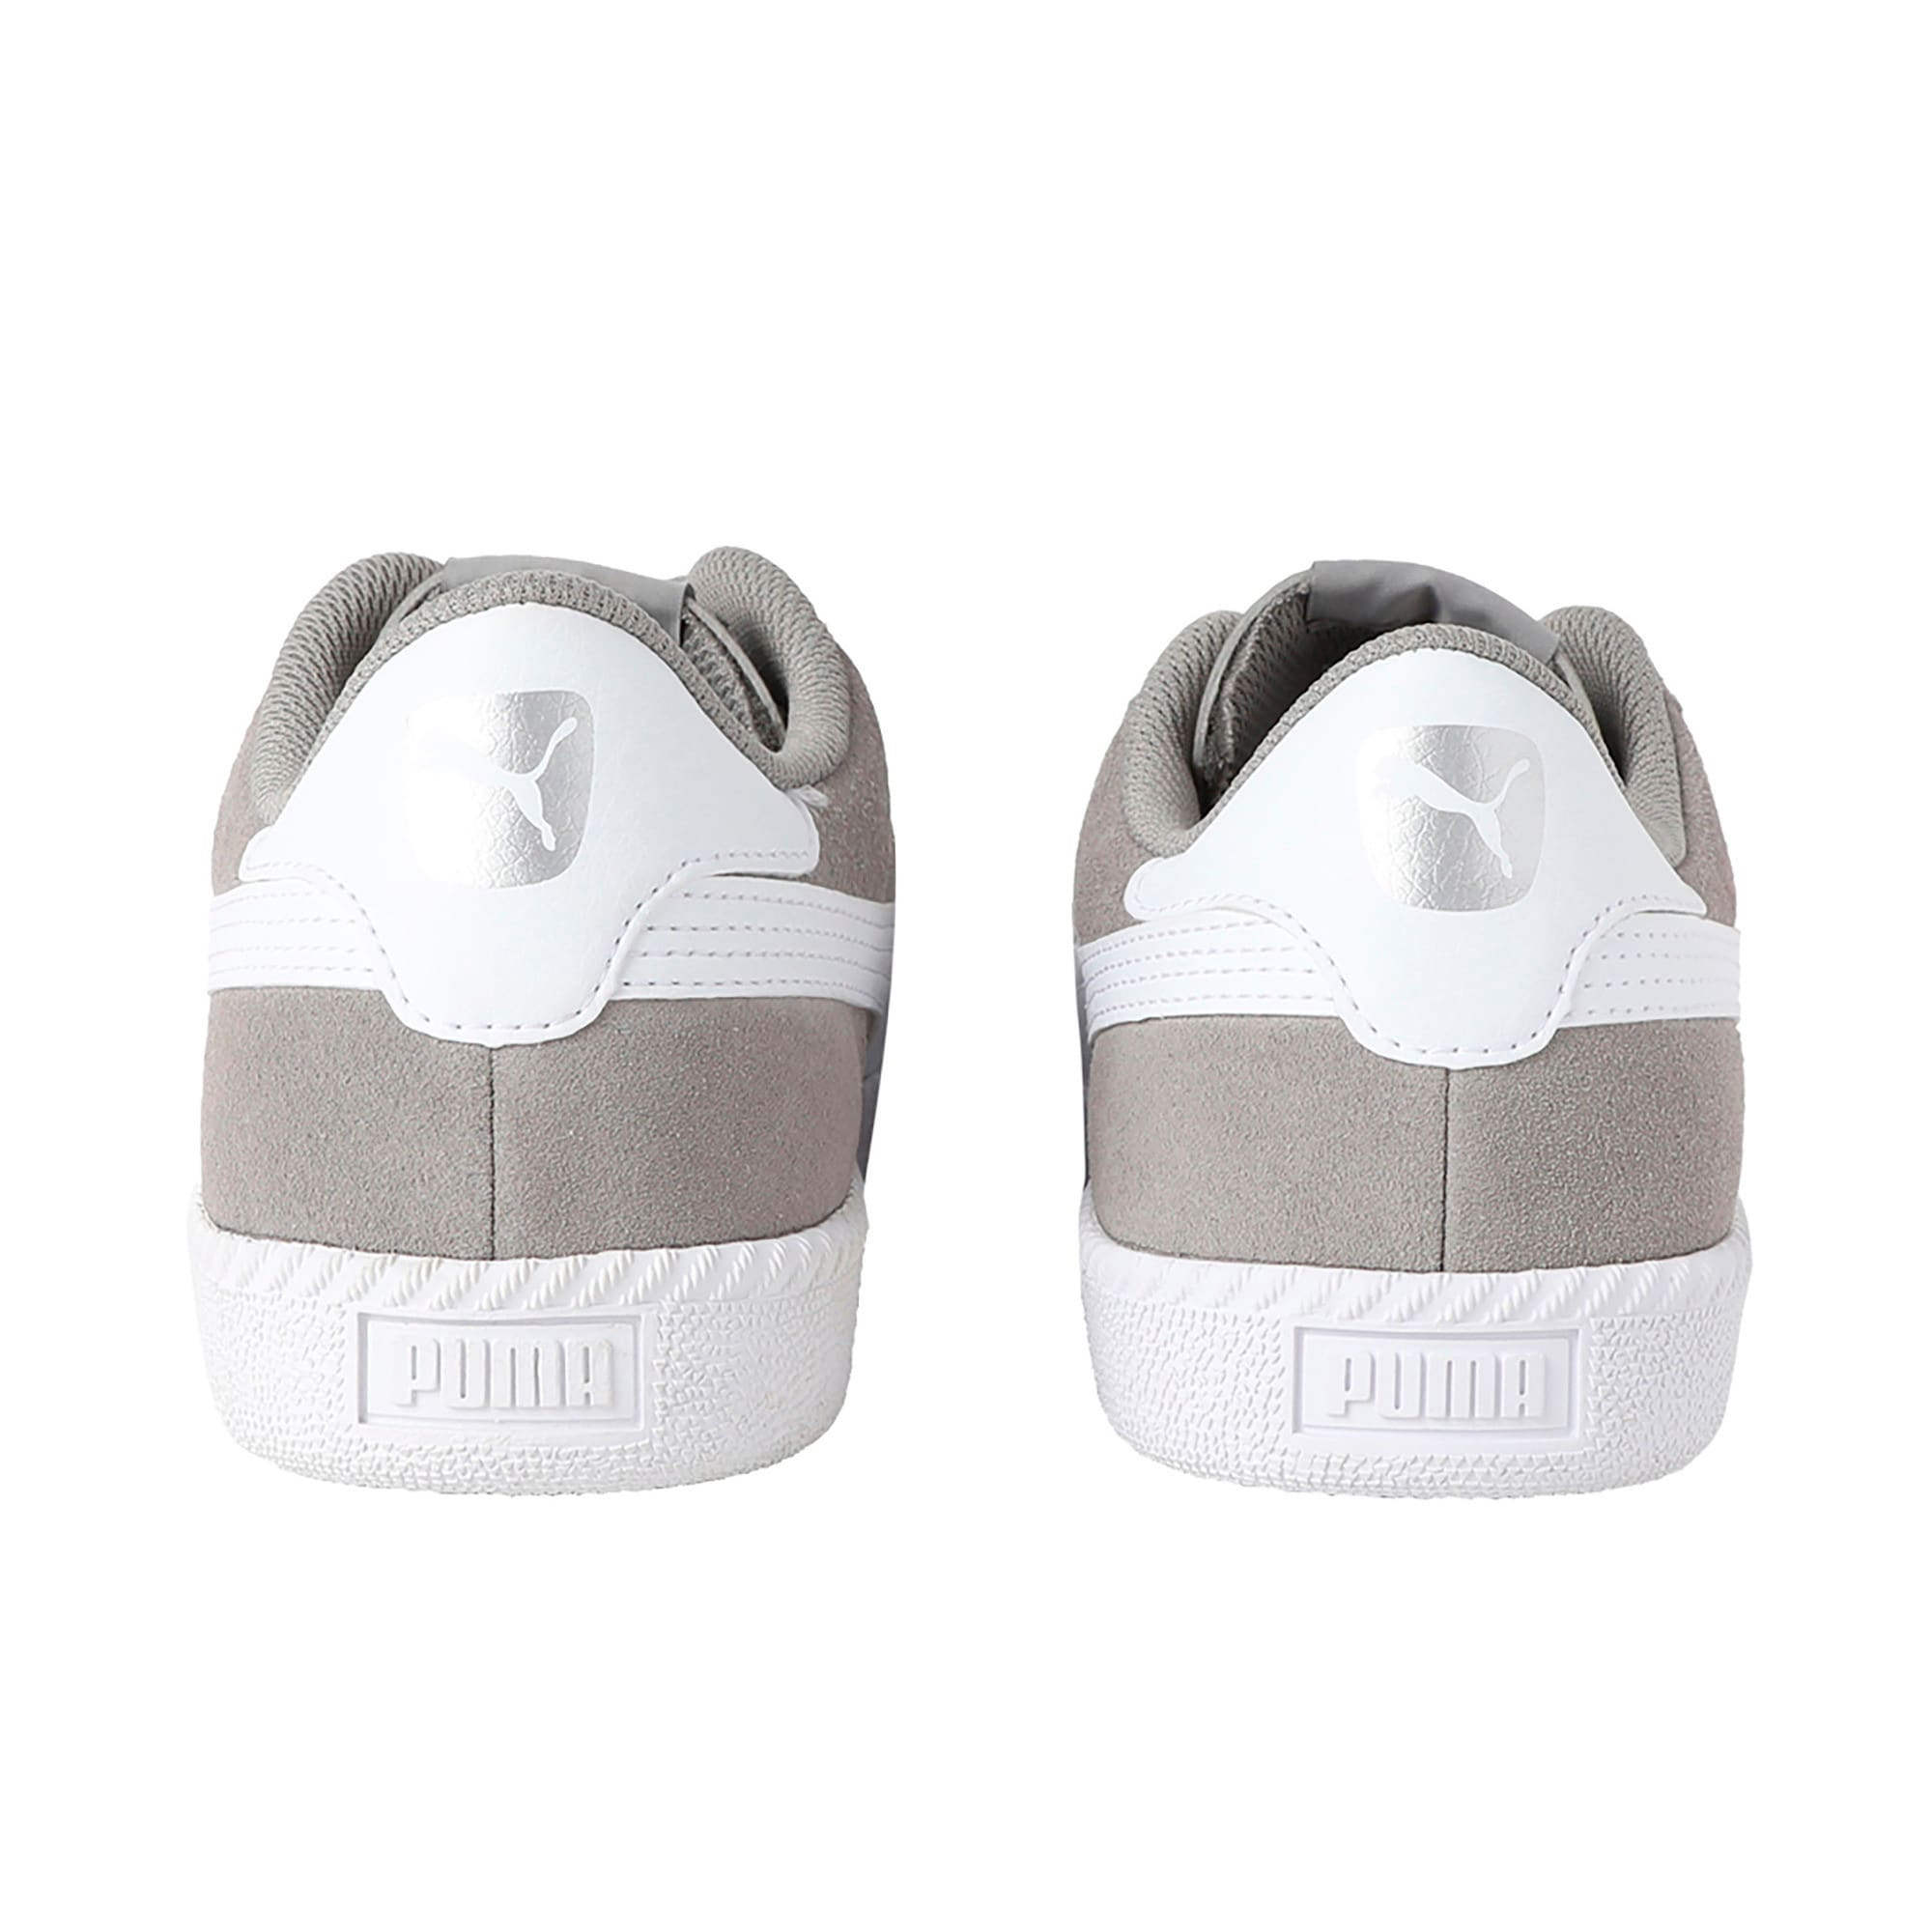 Thumbnail 3 of Astro Cup Trainers, Elephant Skin-Puma White, medium-IND